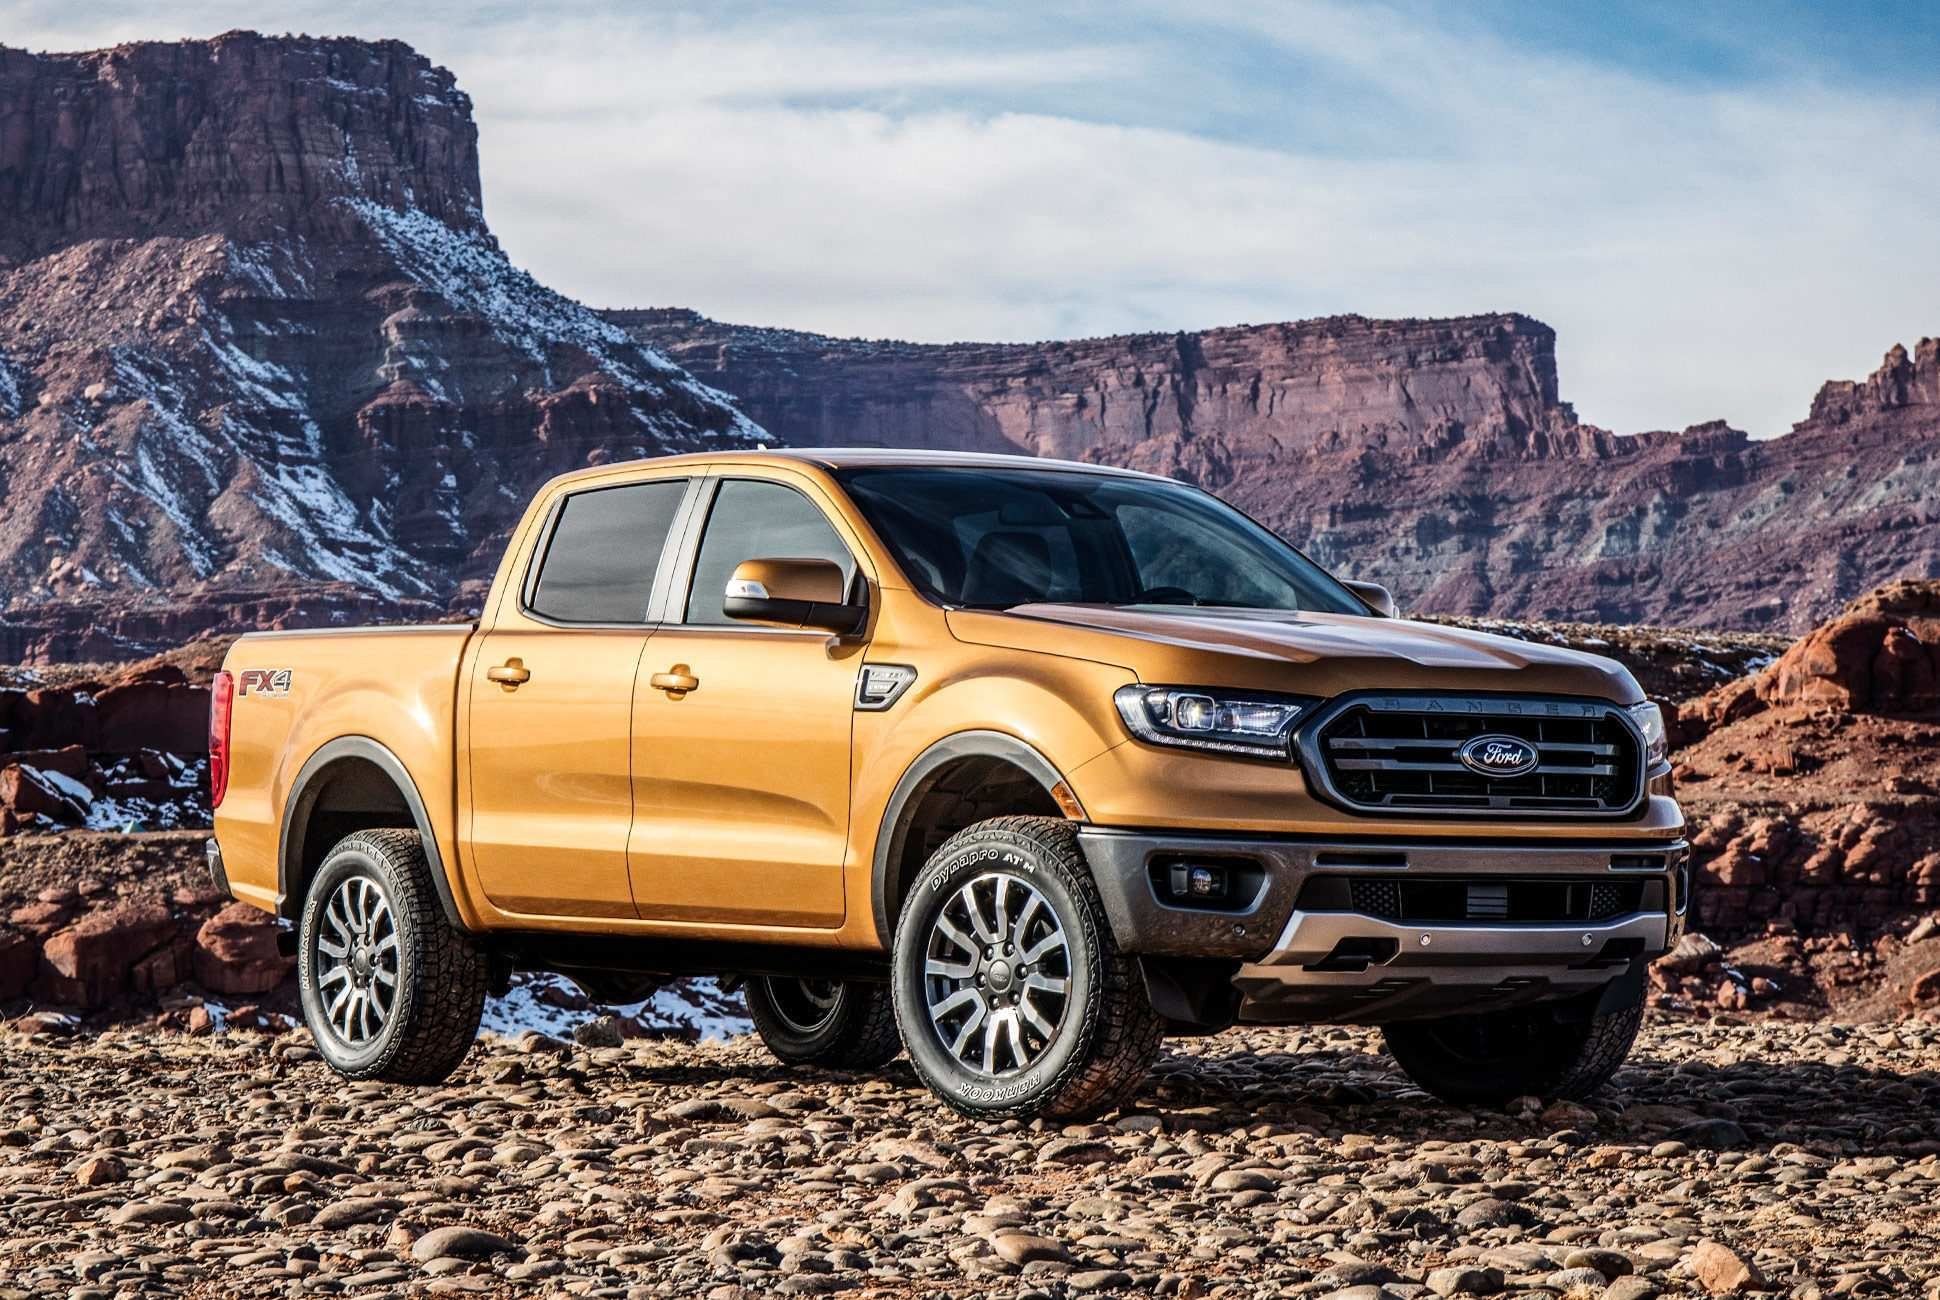 73 The Best Ford Ranger 2020 Model Concept